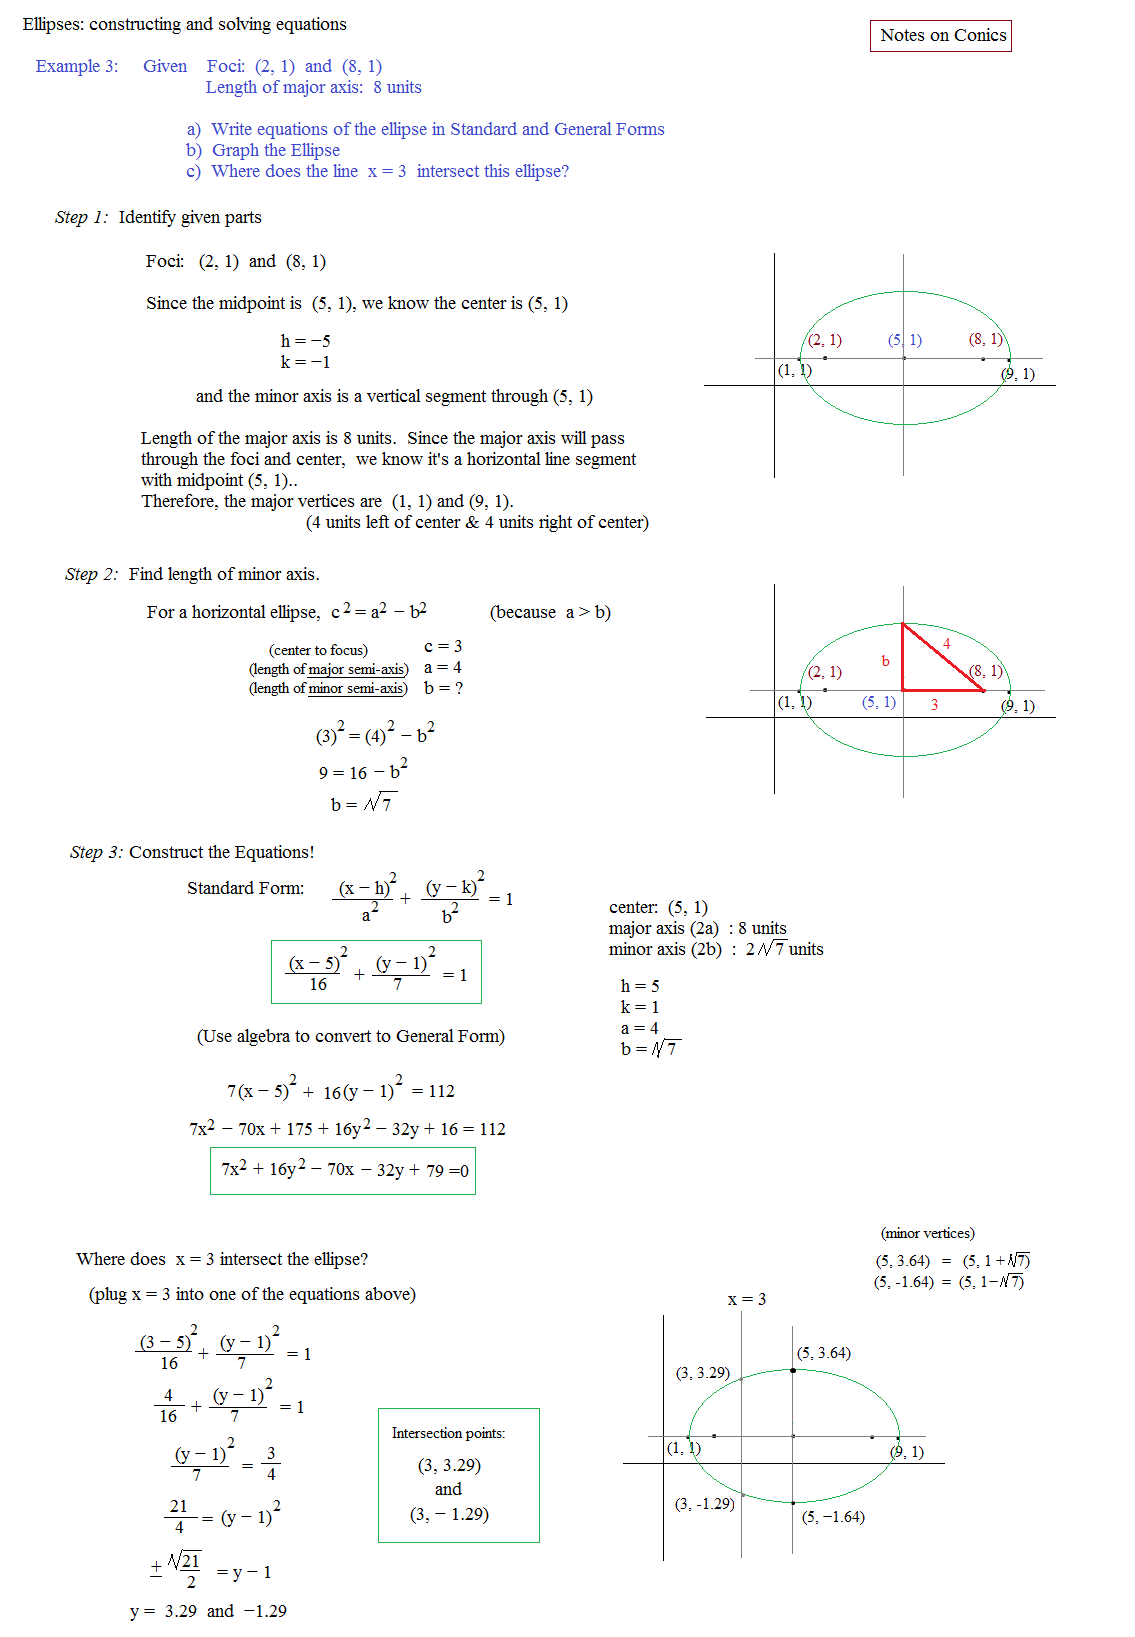 worksheet Ellipses Worksheet equations of ellipses and hyperbolas worksheet jennarocca jennarocca